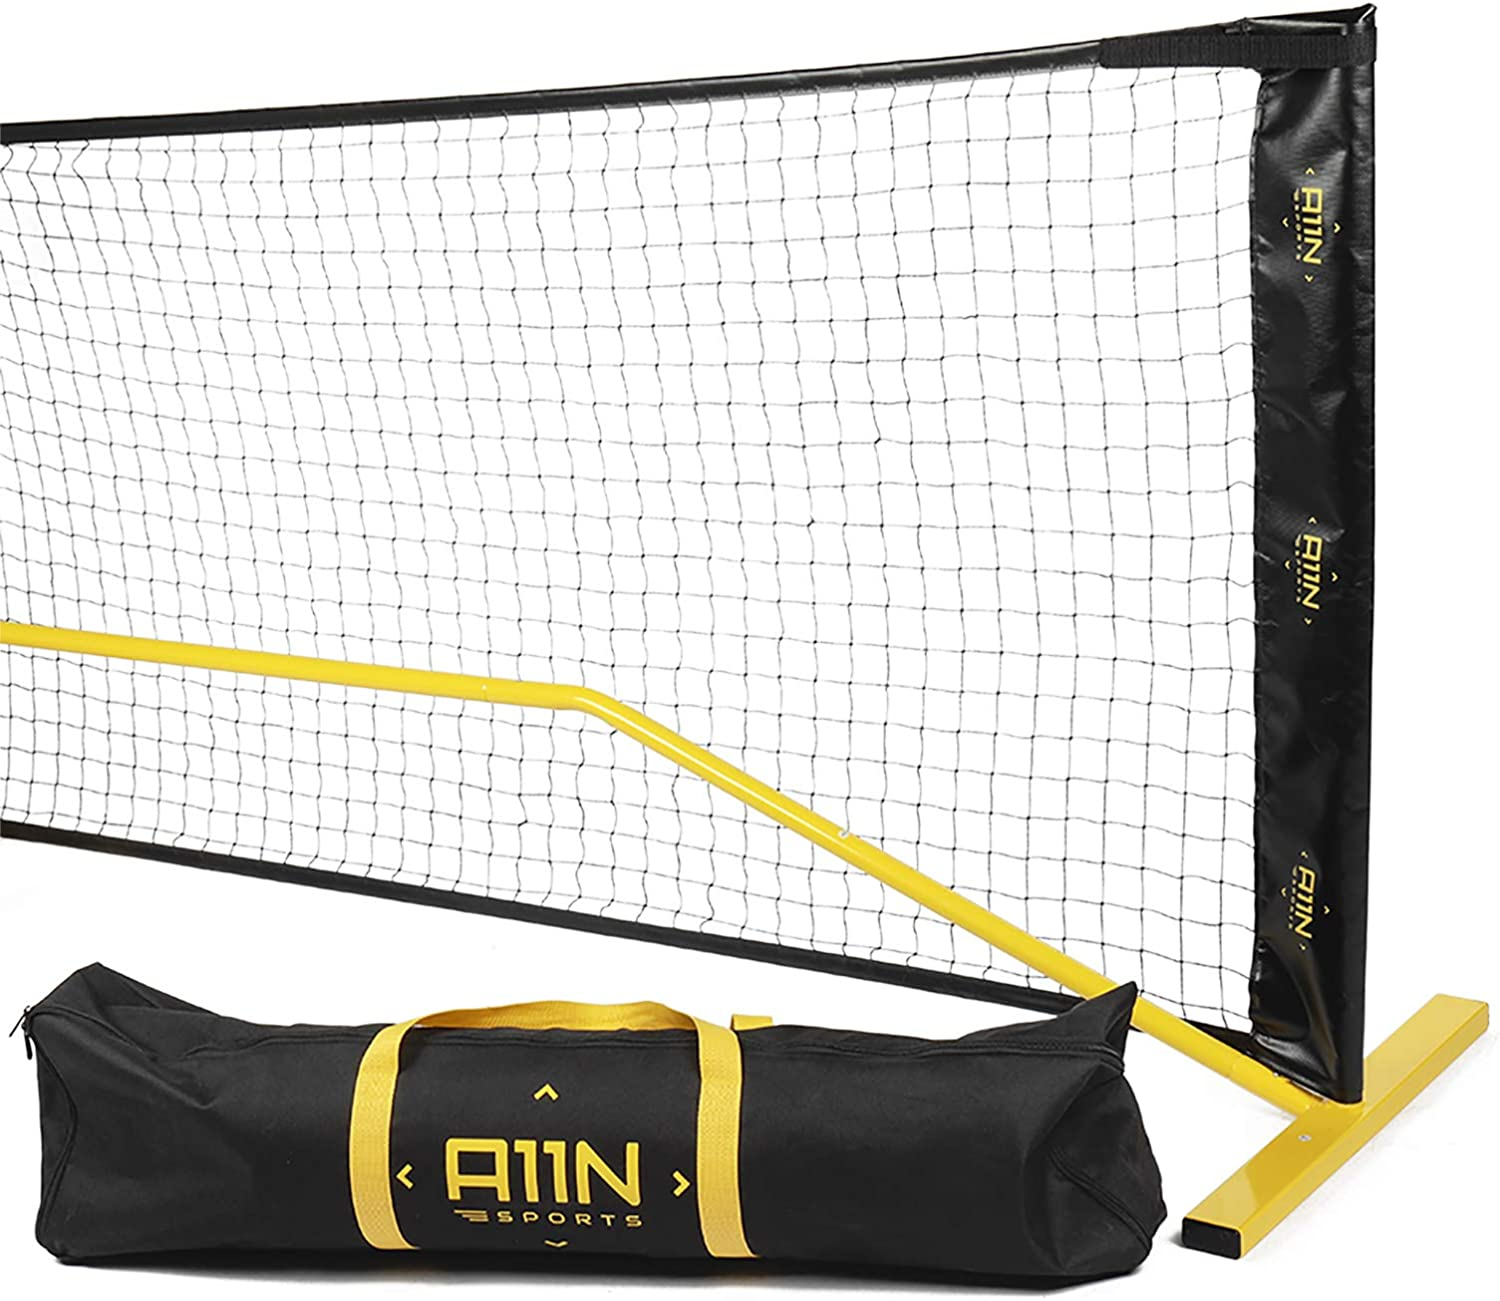 A11N Portable Inventory cleanup selling sale Pickleball Net System Co Cheap sale for All Designed Weather